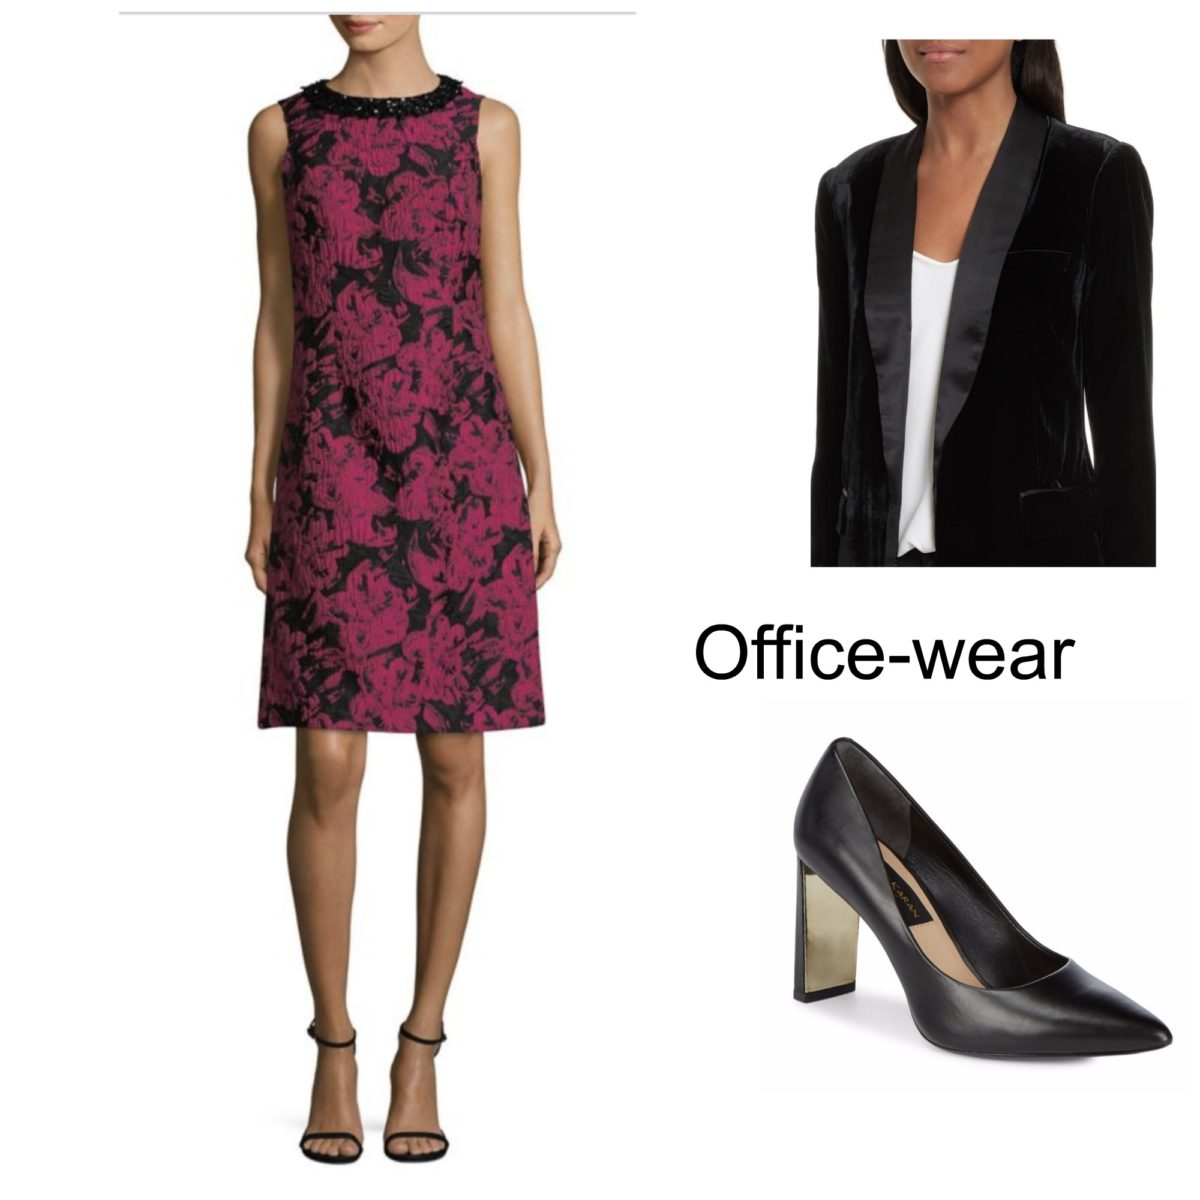 Fashion week Wear to what to office party for woman